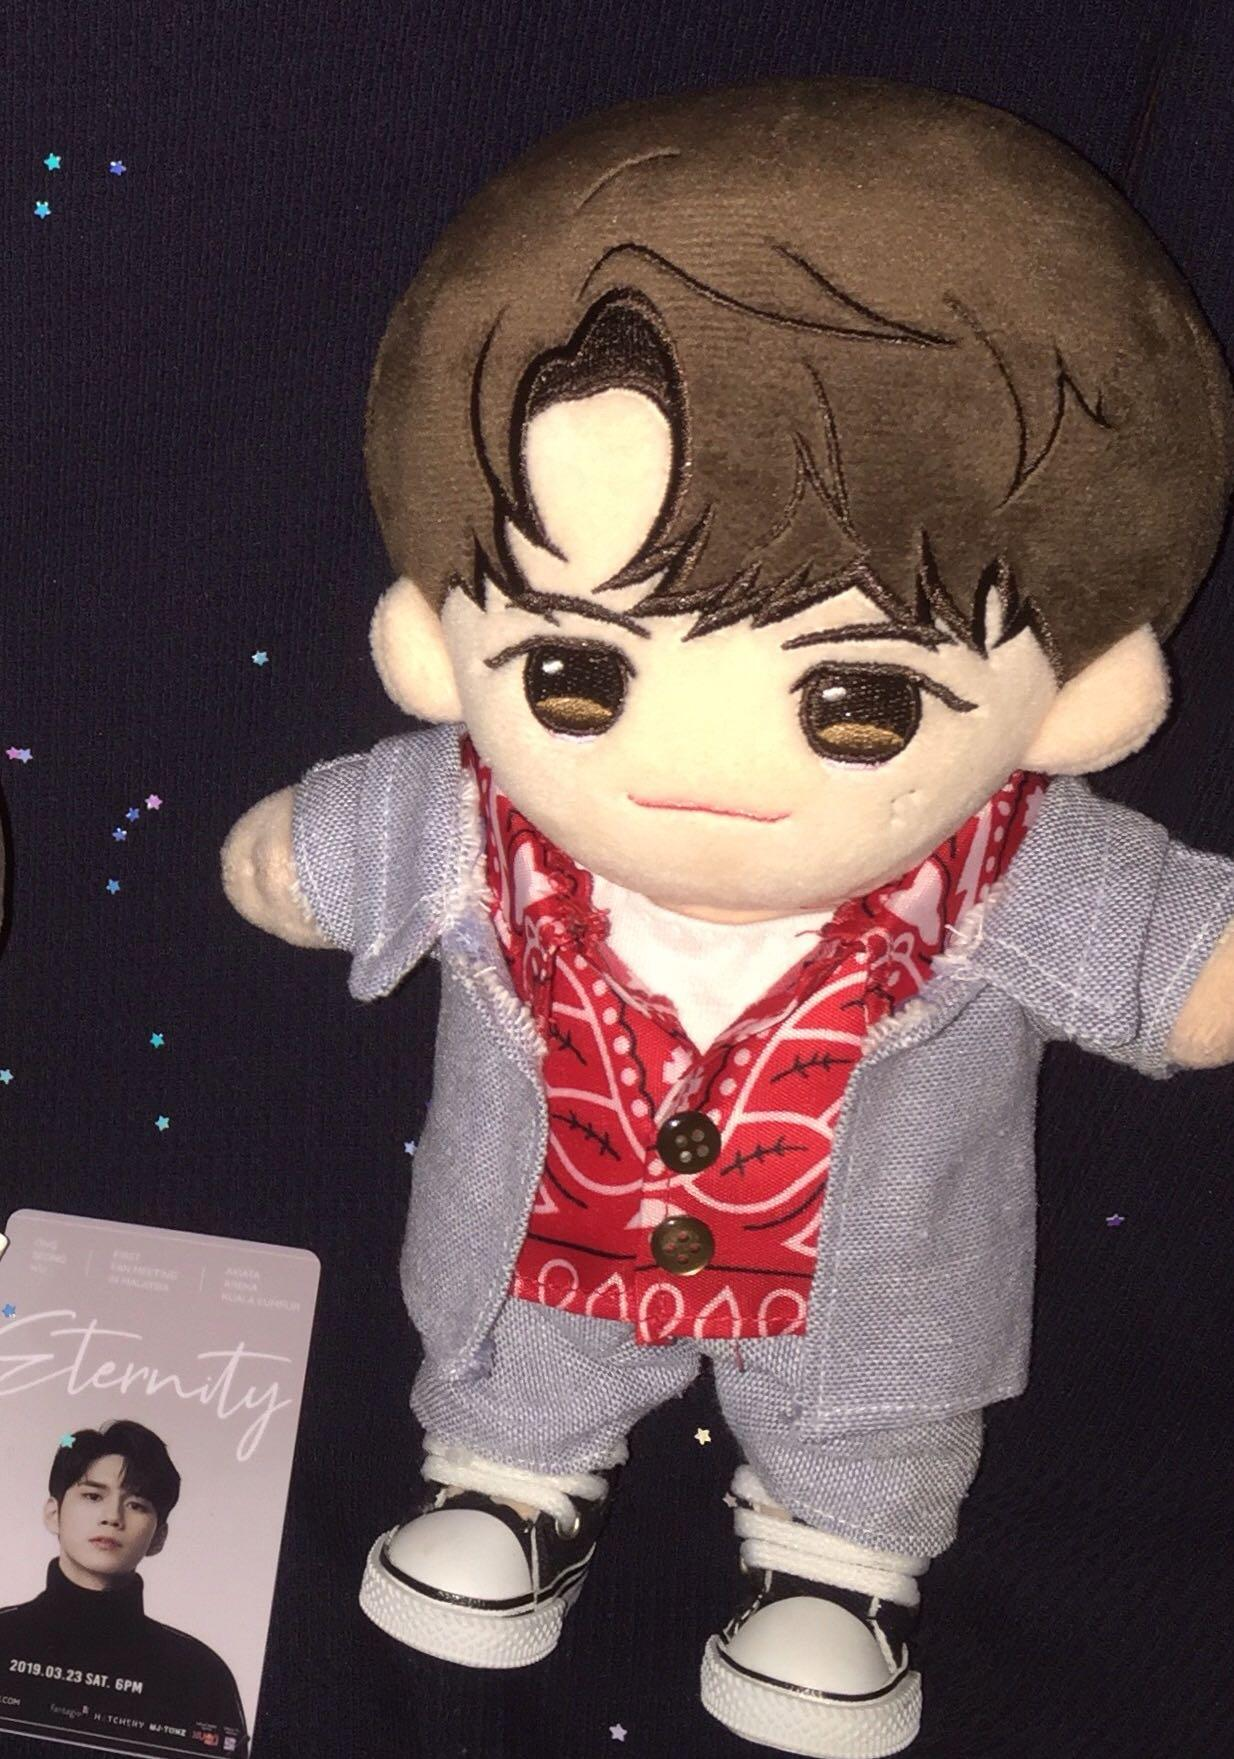 [WTS] 20cm Doll Clothes Ong Seongwu Inspired